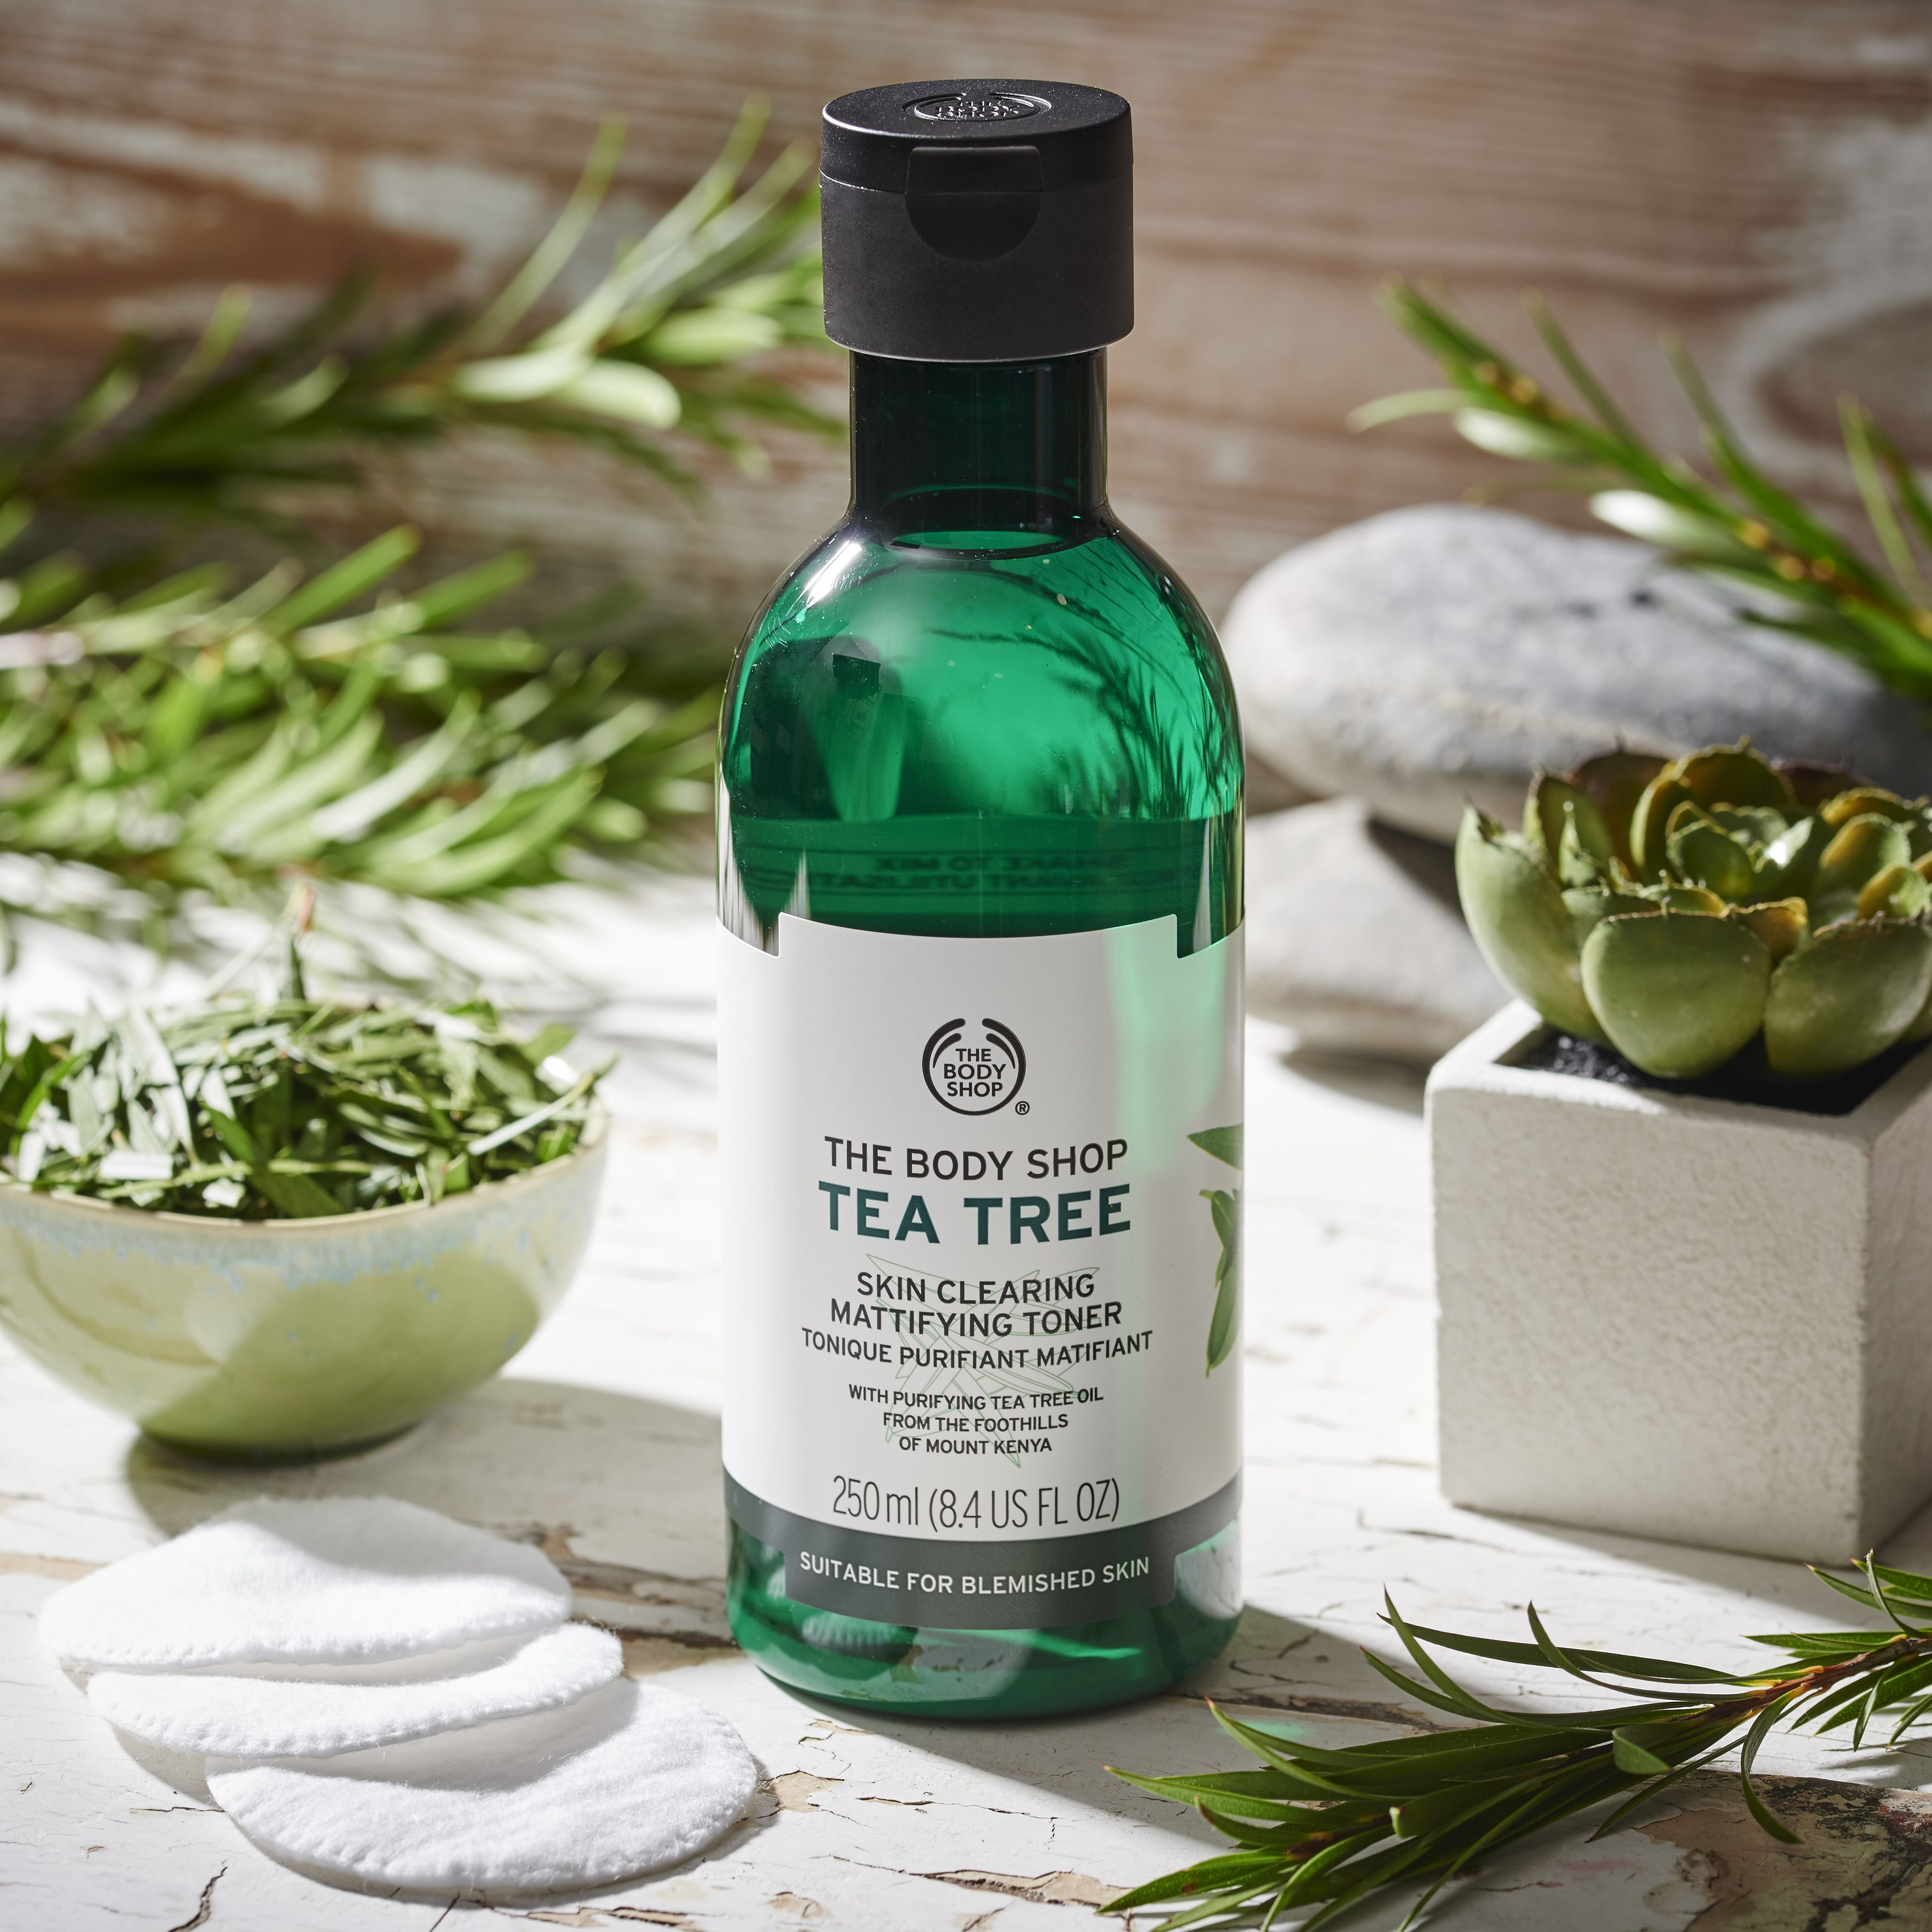 Toning Your Skin Is An Important Step In Your Regime The Tea Tree Skin Clearing Mattifying Toner Tight Body Shop Tea Tree Skin Cleanser Products The Body Shop